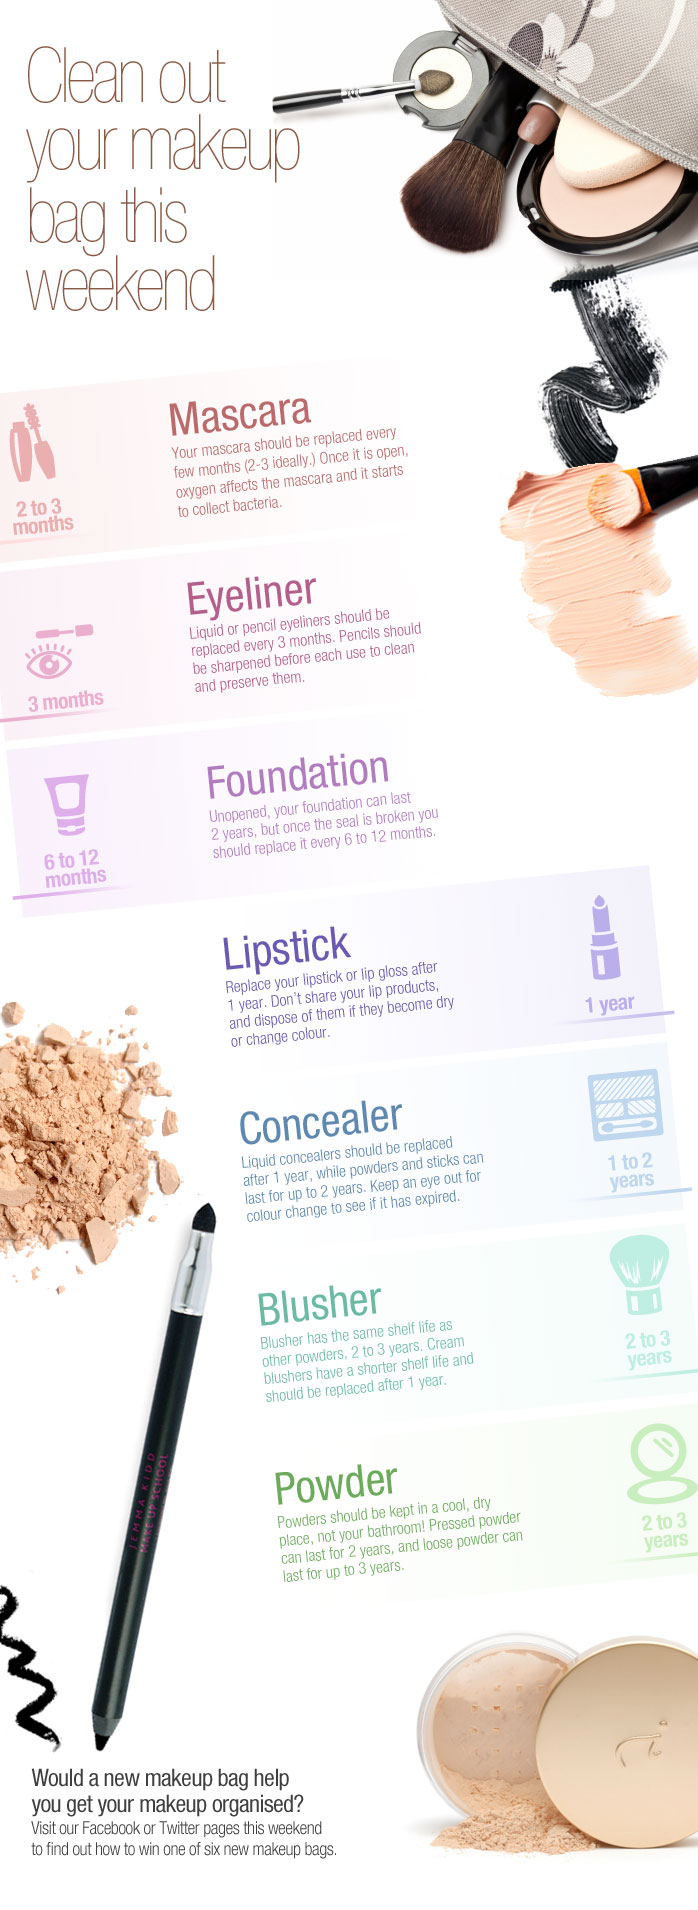 Find out how long your makeup lasts